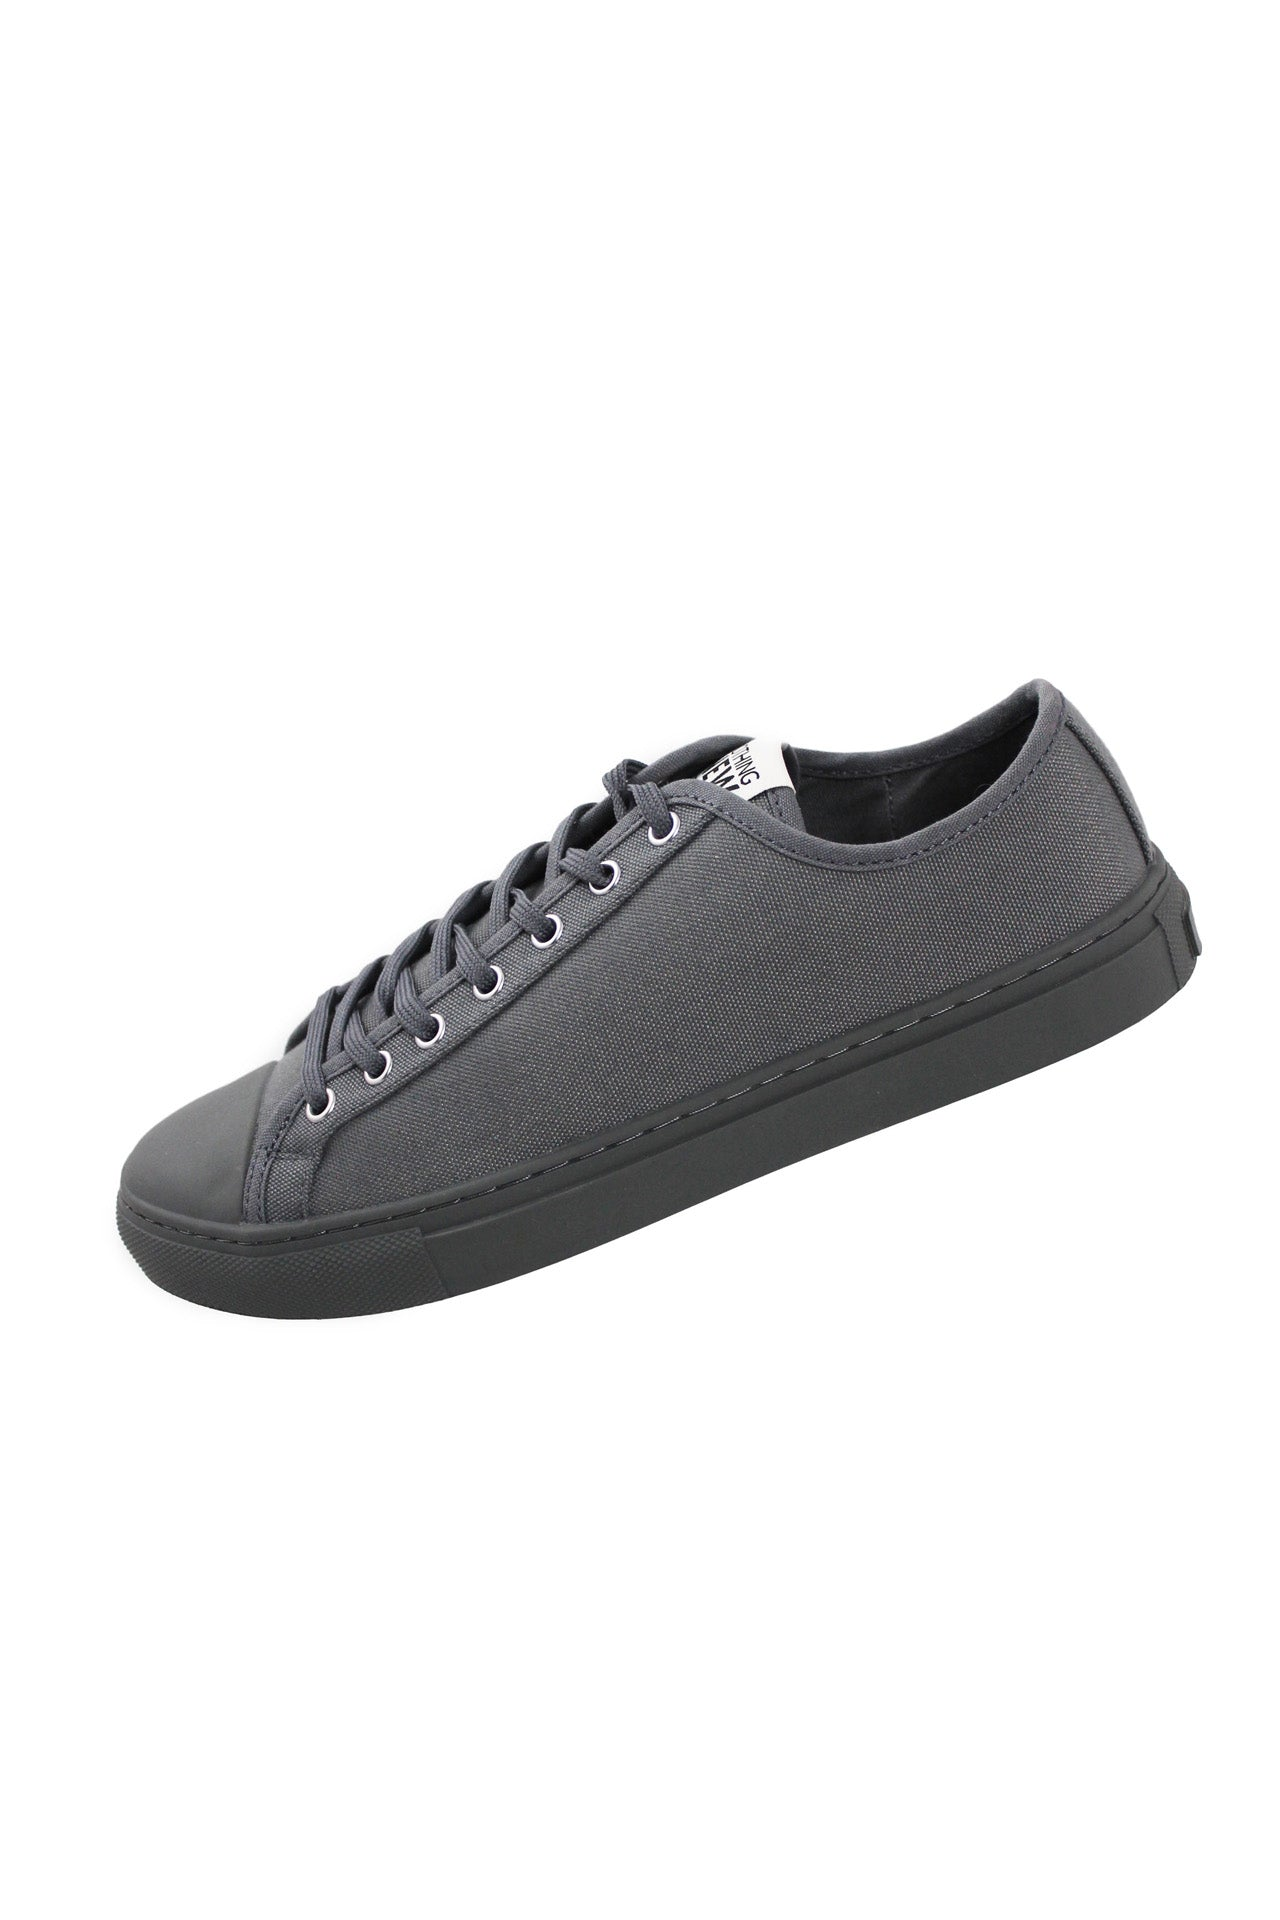 nothing new gray low top tennis shoes. features 7 eyelet lace up fastening.